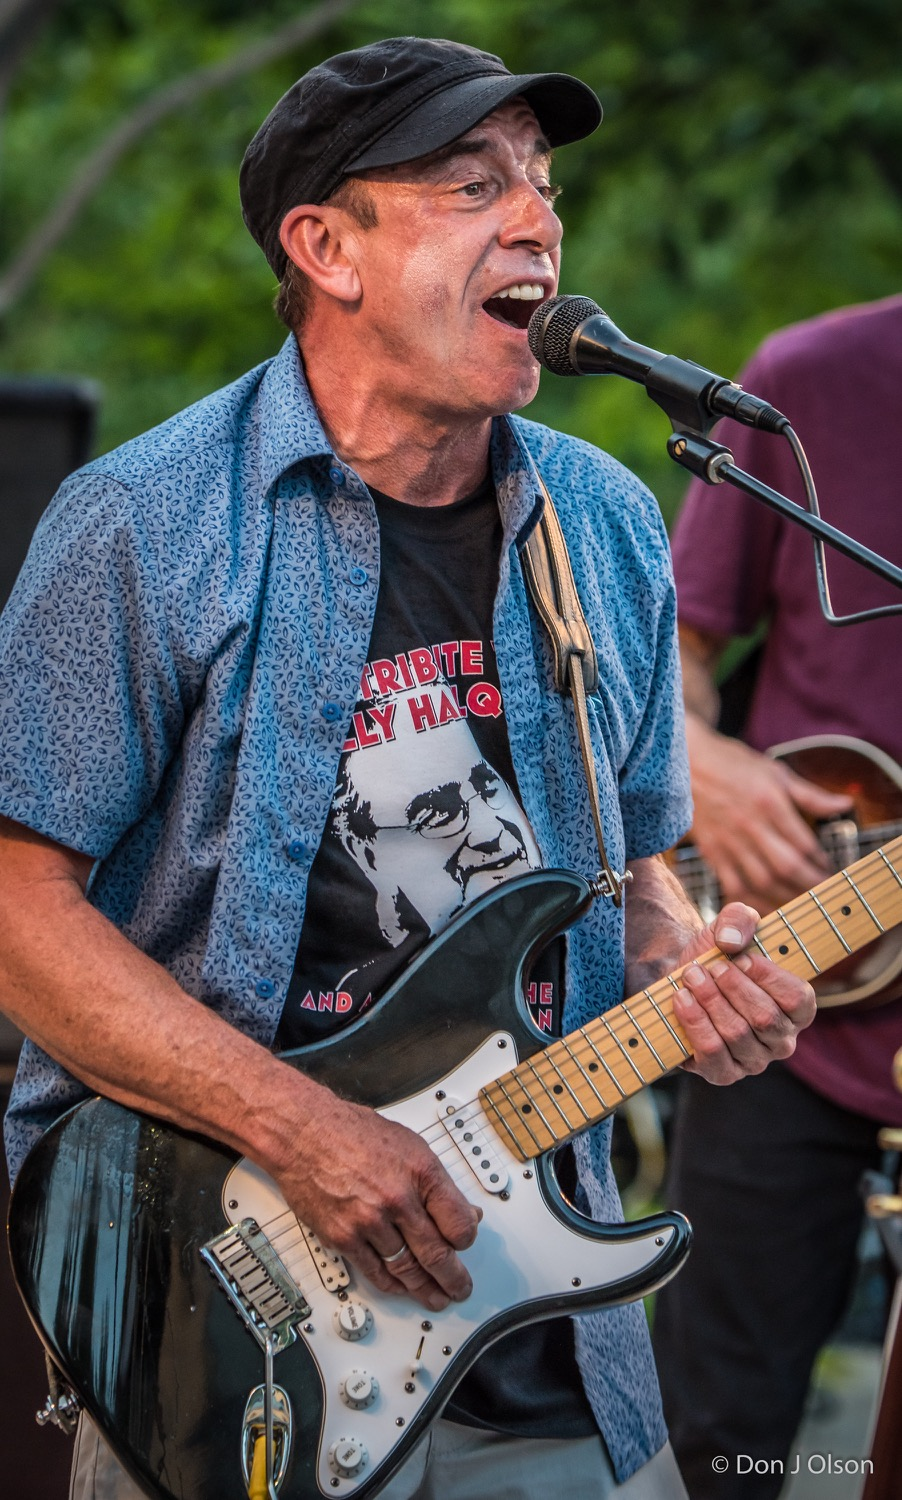 Steve Grossman / The Veterans' Memorial Wolfe Park Amphitheater / St. Louis Park, Minnesota / August 1st, 2015